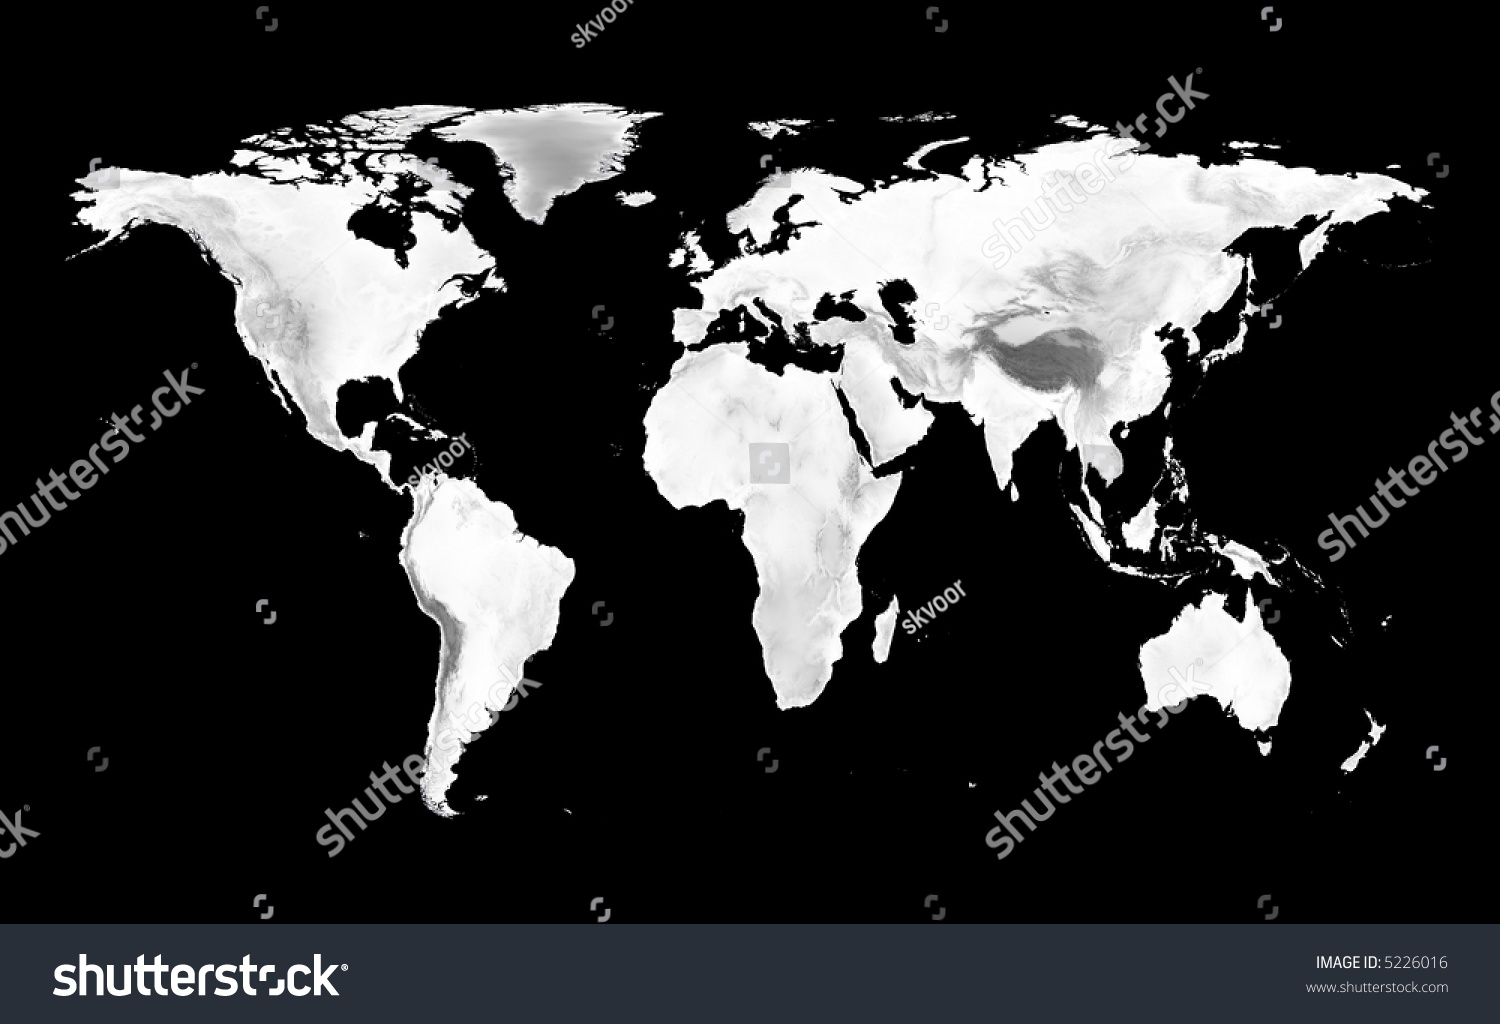 World map grayscale elevation on black stock illustration 5226016 world map with grayscale elevation on black background gumiabroncs Gallery